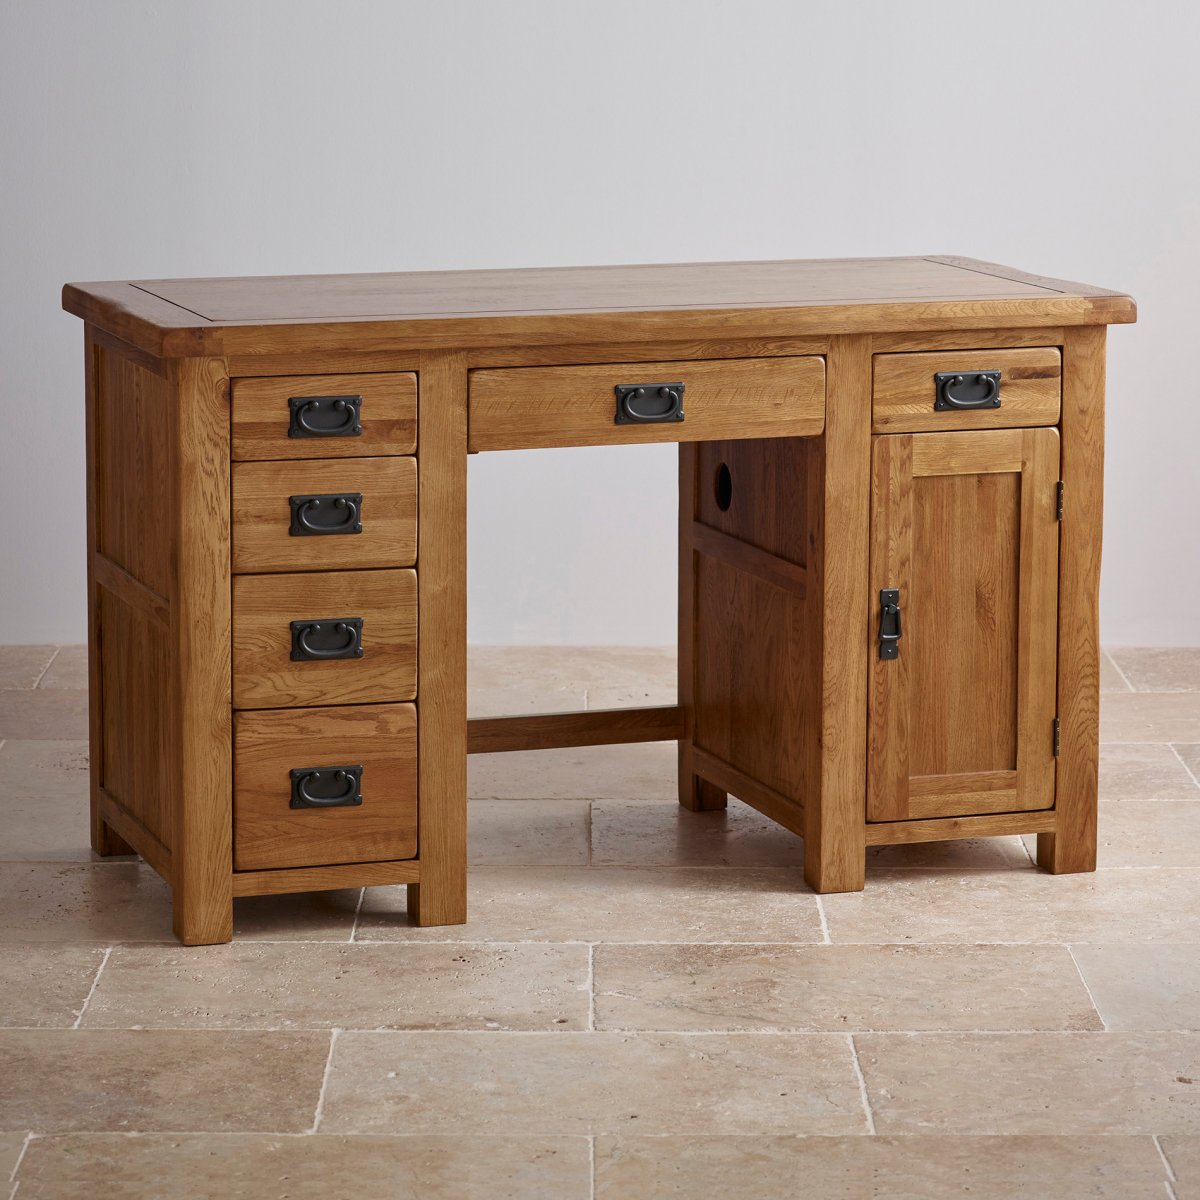 Original Rustic Computer Desk In Solid Oak Oak Furniture